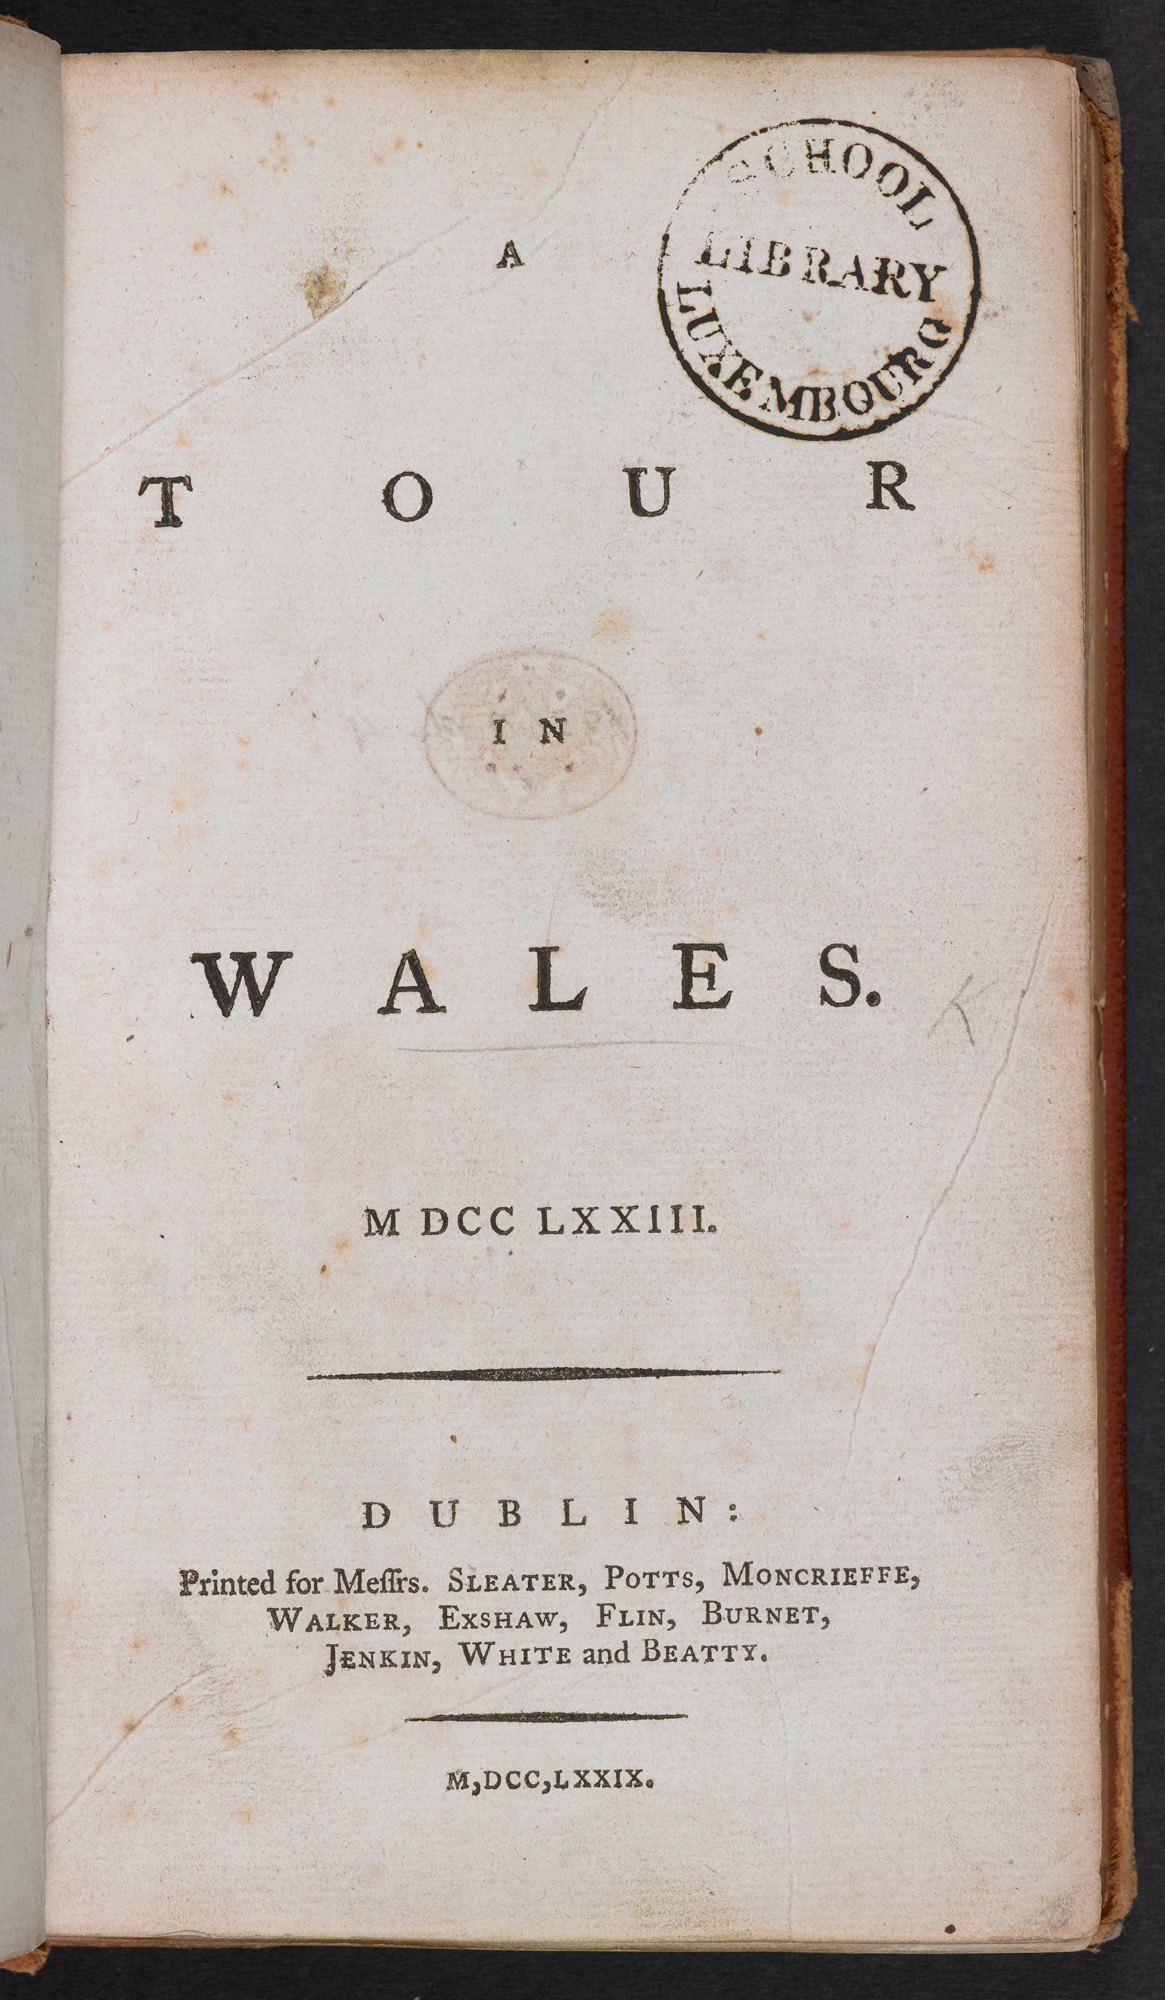 A Tour in Wales title page